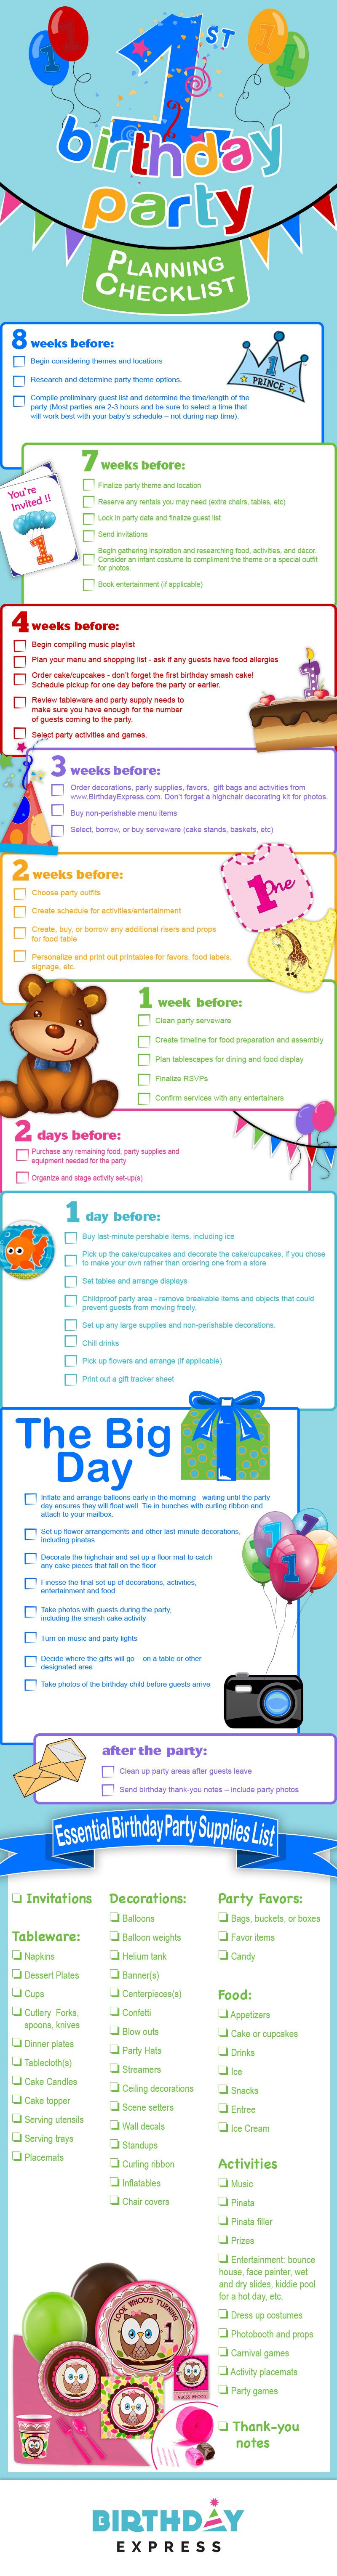 1st Birthday Party Planning Checklist